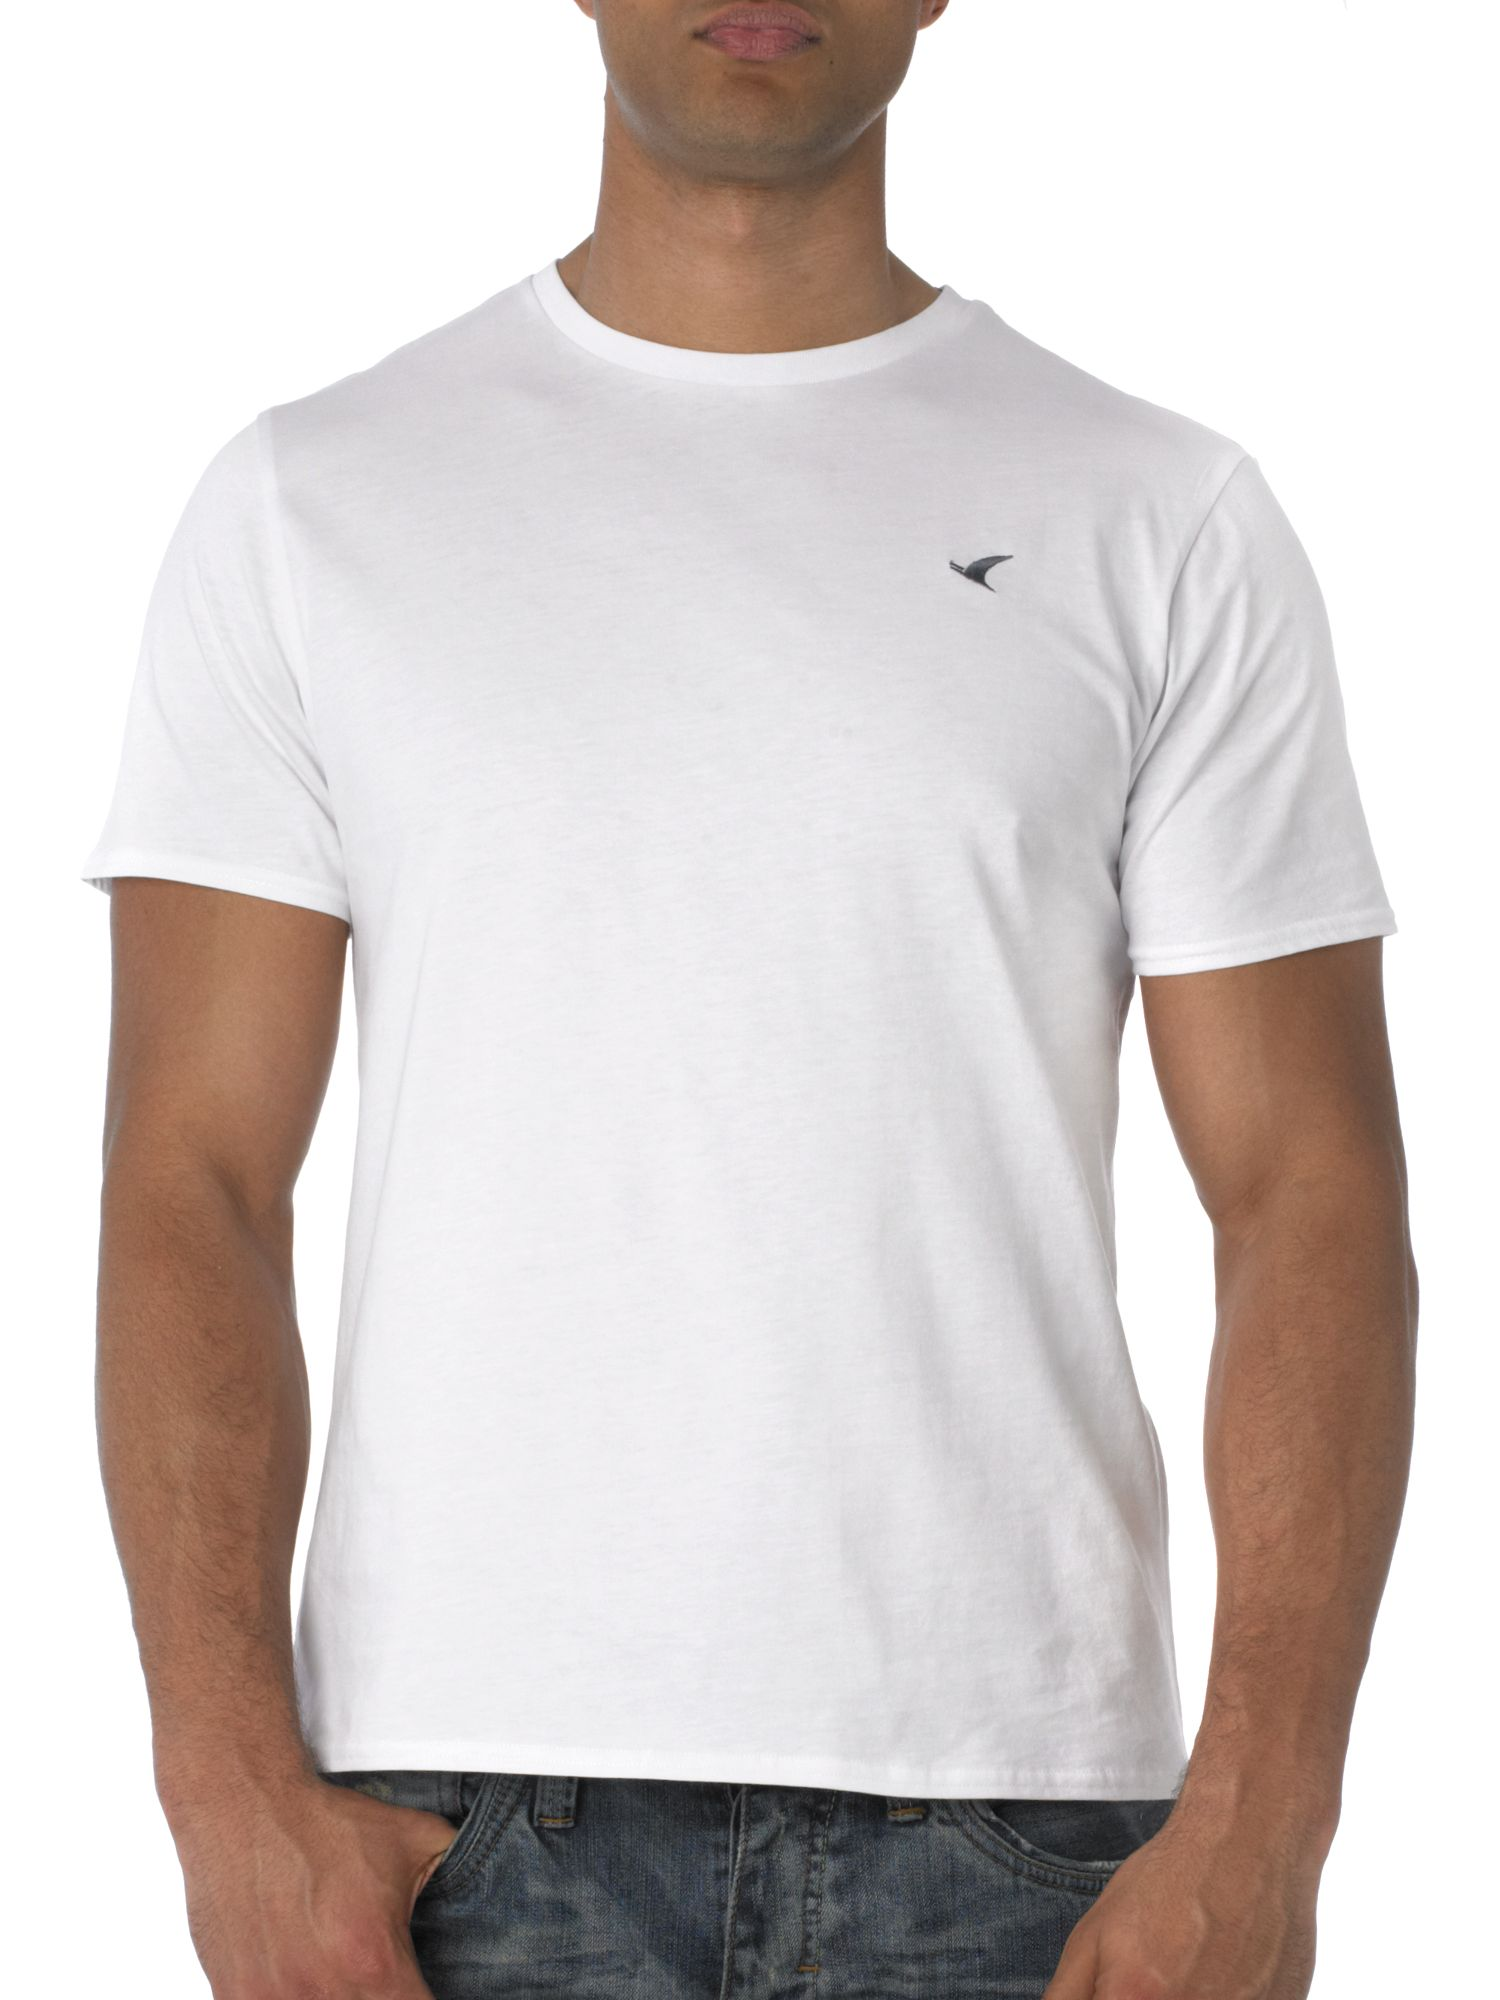 Howick Logo nightwear t-shirt product image